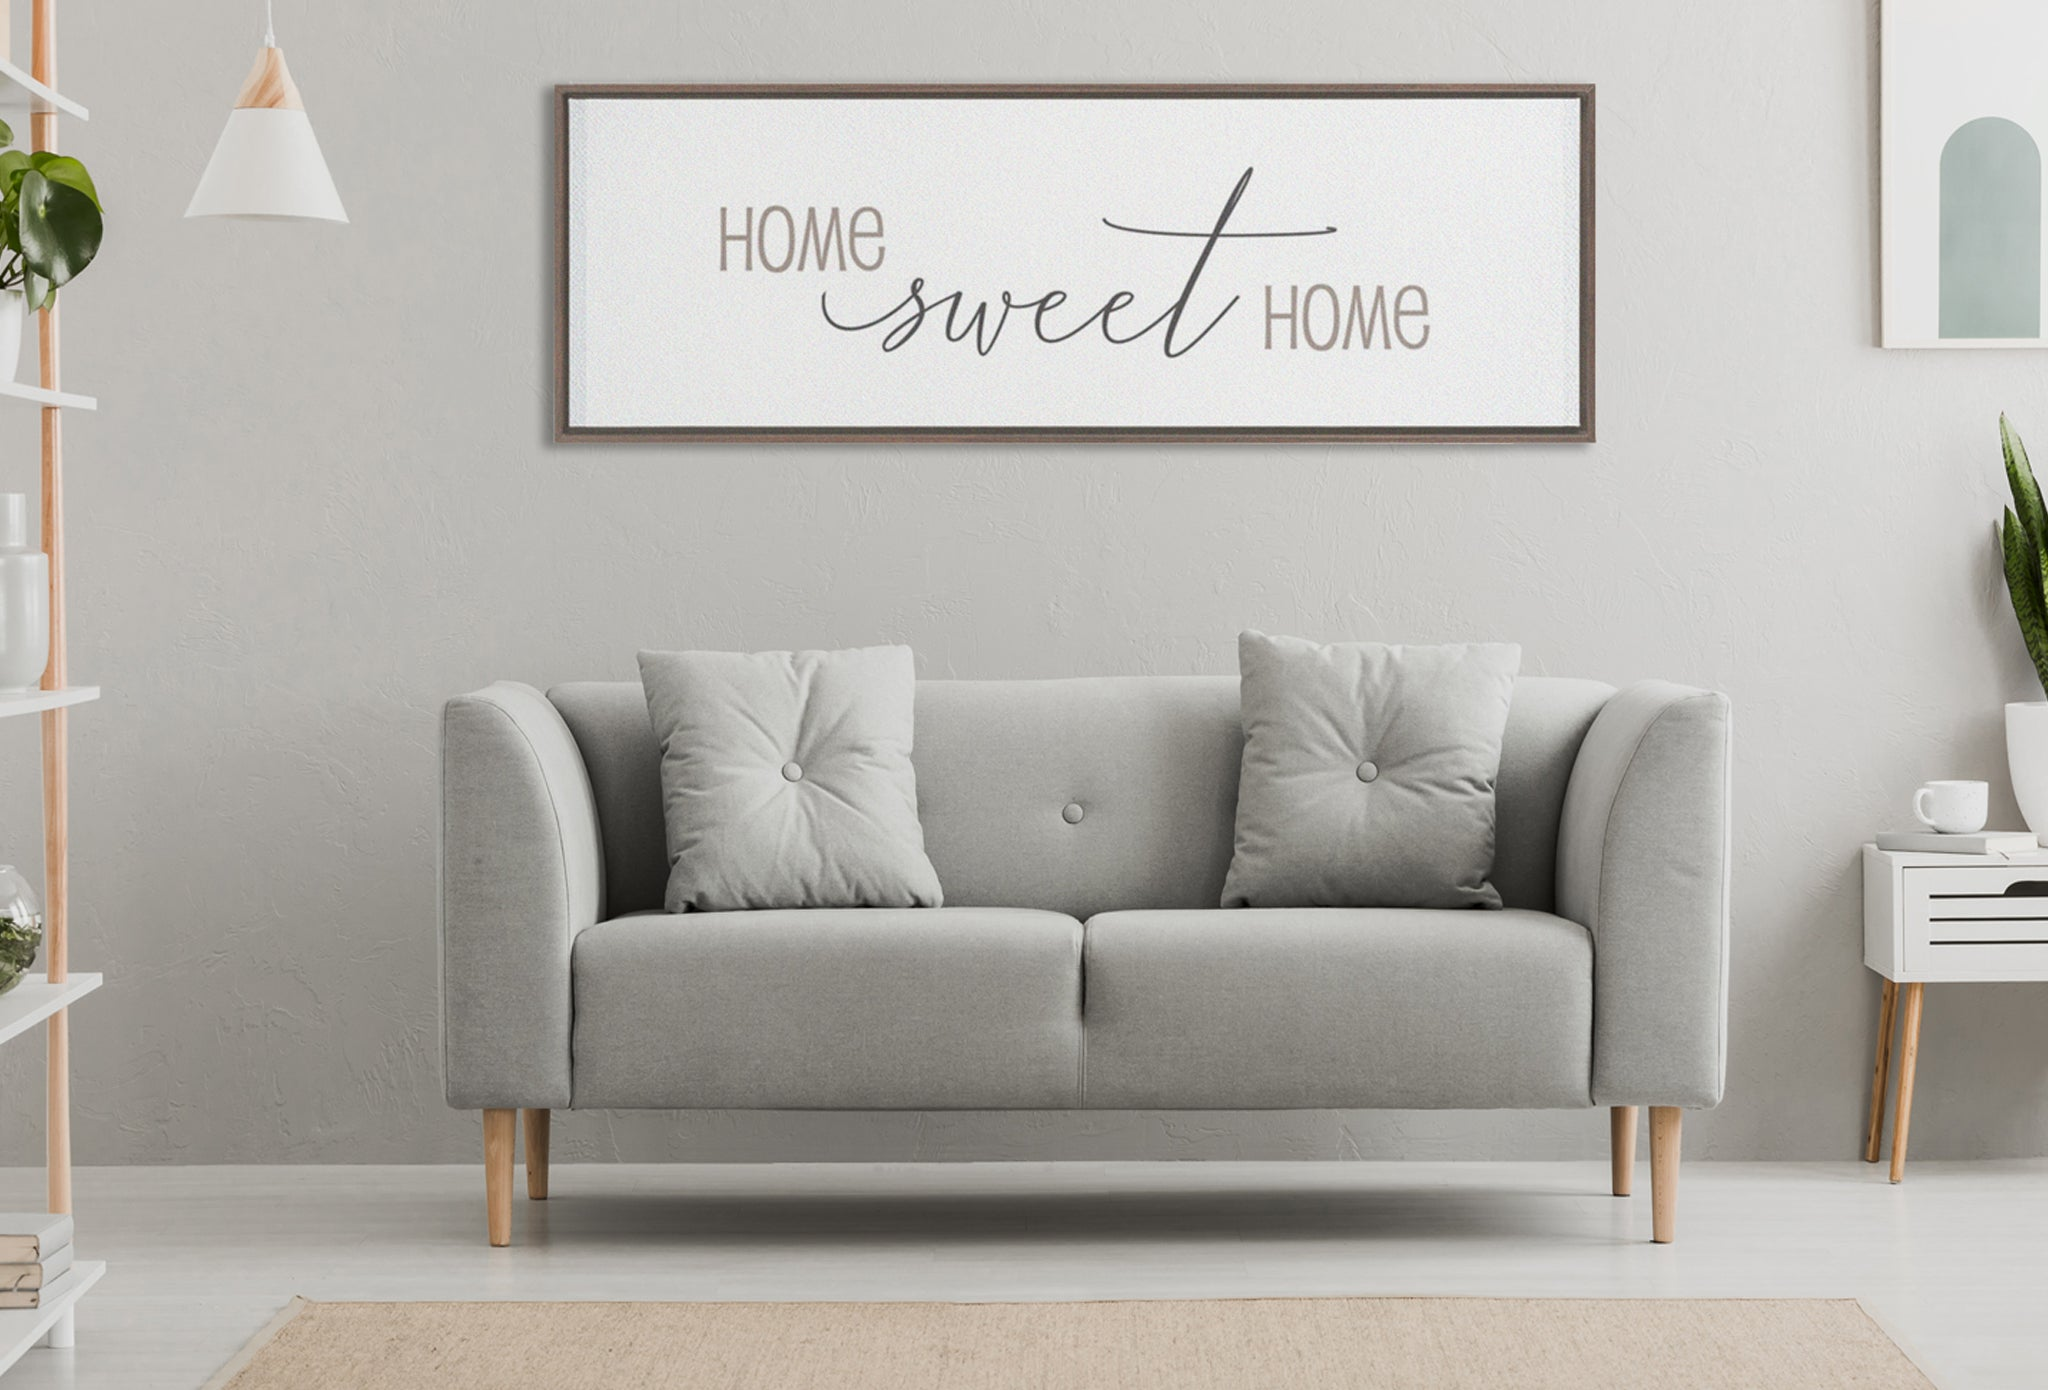 Home Sweet Home Wall Decor.Home Sweet Home Home Wall Decor Framed Traditional Stretched Canvas Framed